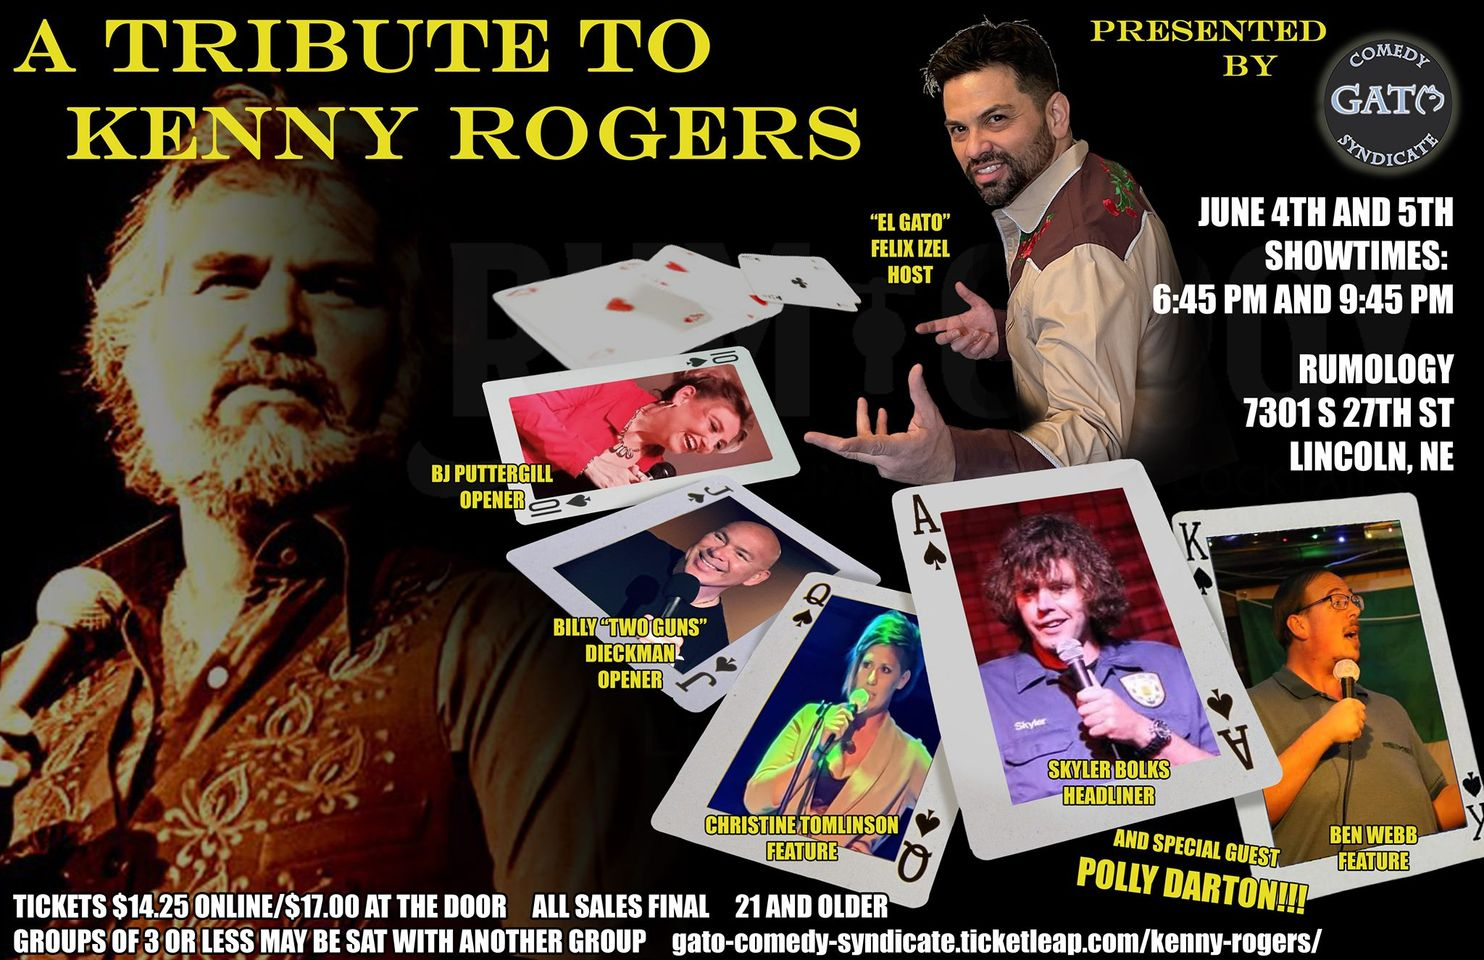 Gato Comedy Syndicate Presents a Tribute To Kenny Rogers In Lincoln NE